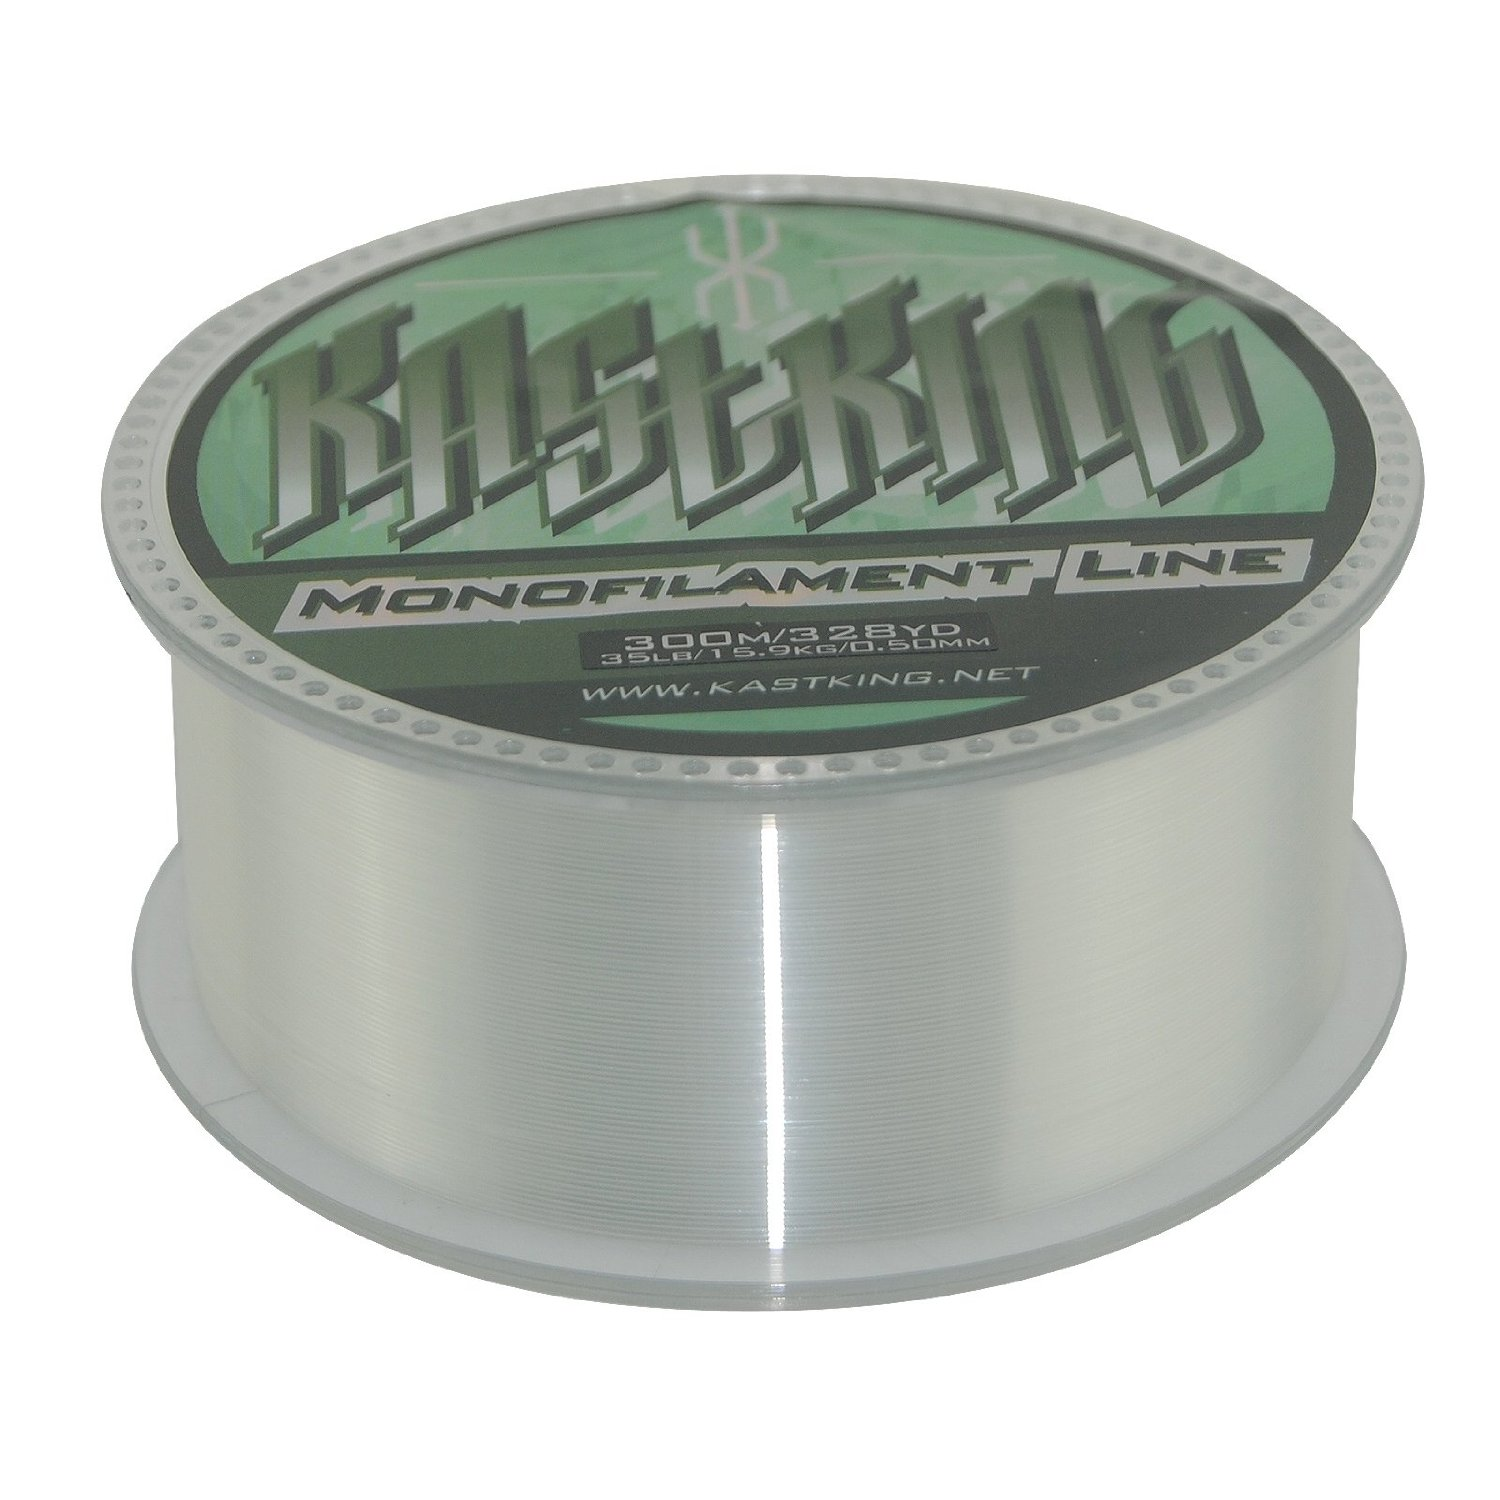 Daddy waddy weeviews kastking monofilament fishing line 6 for Best monofilament fishing line for saltwater